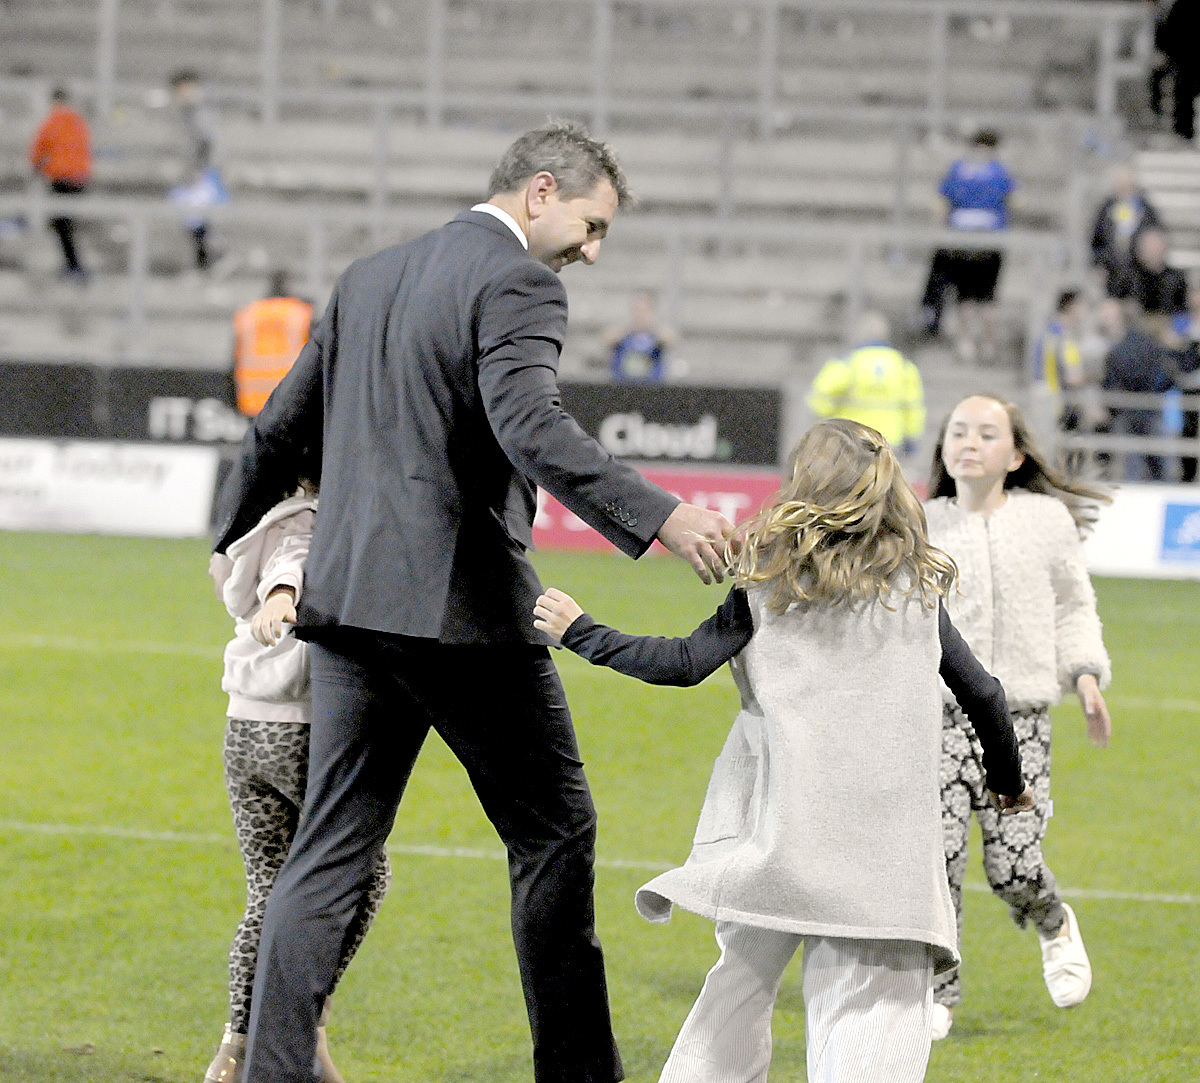 Steve Price with his three daughters - Sienna, Savannah and Sharni